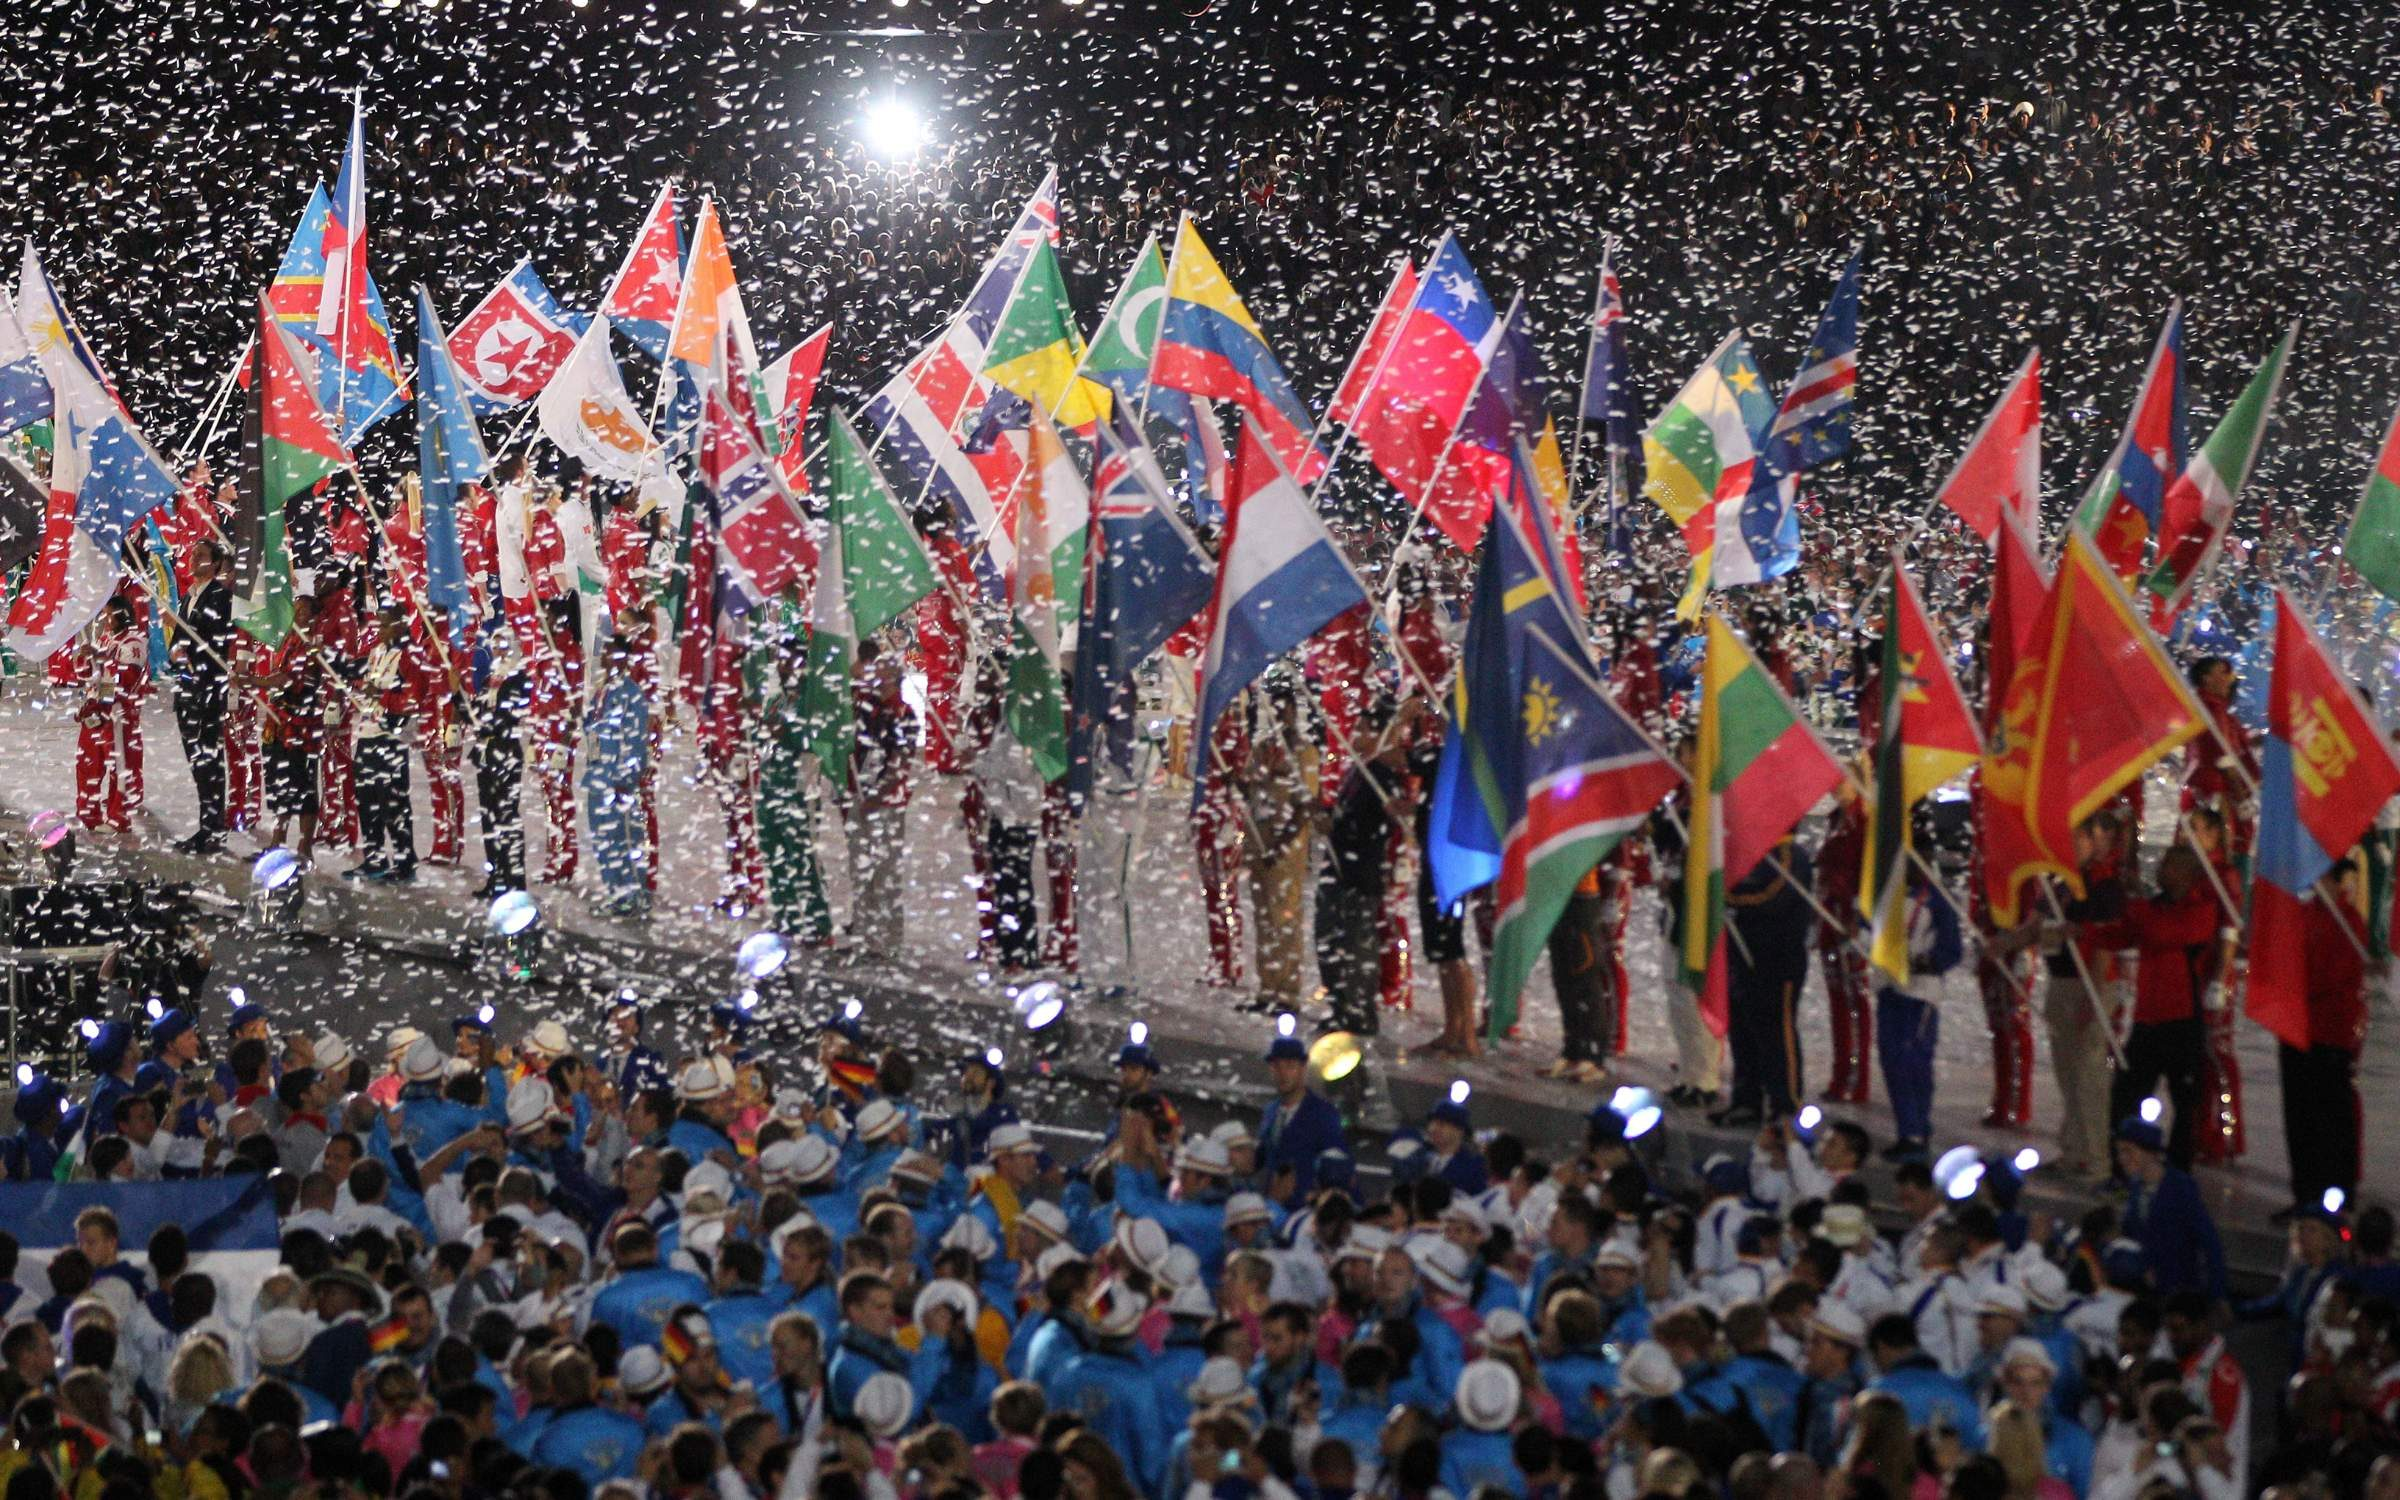 Olympic Summer Games - Closing Ceremony Athletes with flags from all nations make their way into the stadium as part of the 2012 London Olympic Summer Games at the Olympic Stadium, Olympic Park, London, England, UK on August 12th 2012 (Photo by AMA/Corbis via Getty Images)